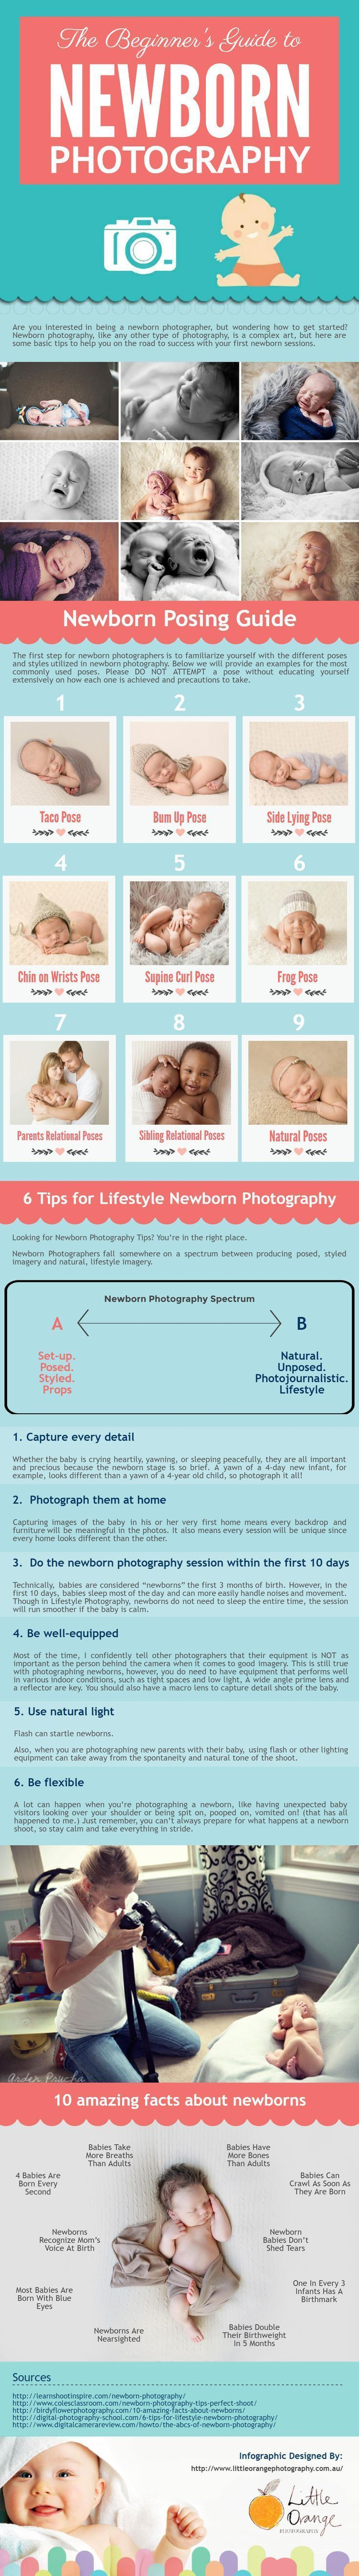 If you're new to photography, check out this infographic for newborn photography ideas, the beginner's guide to newborn photography. The first step for new born photographers is to familiarize yourself with the different poses and styles utilized in newborn photography. Also, tips for lifestyle newborn photography, facts about newborns… etc.